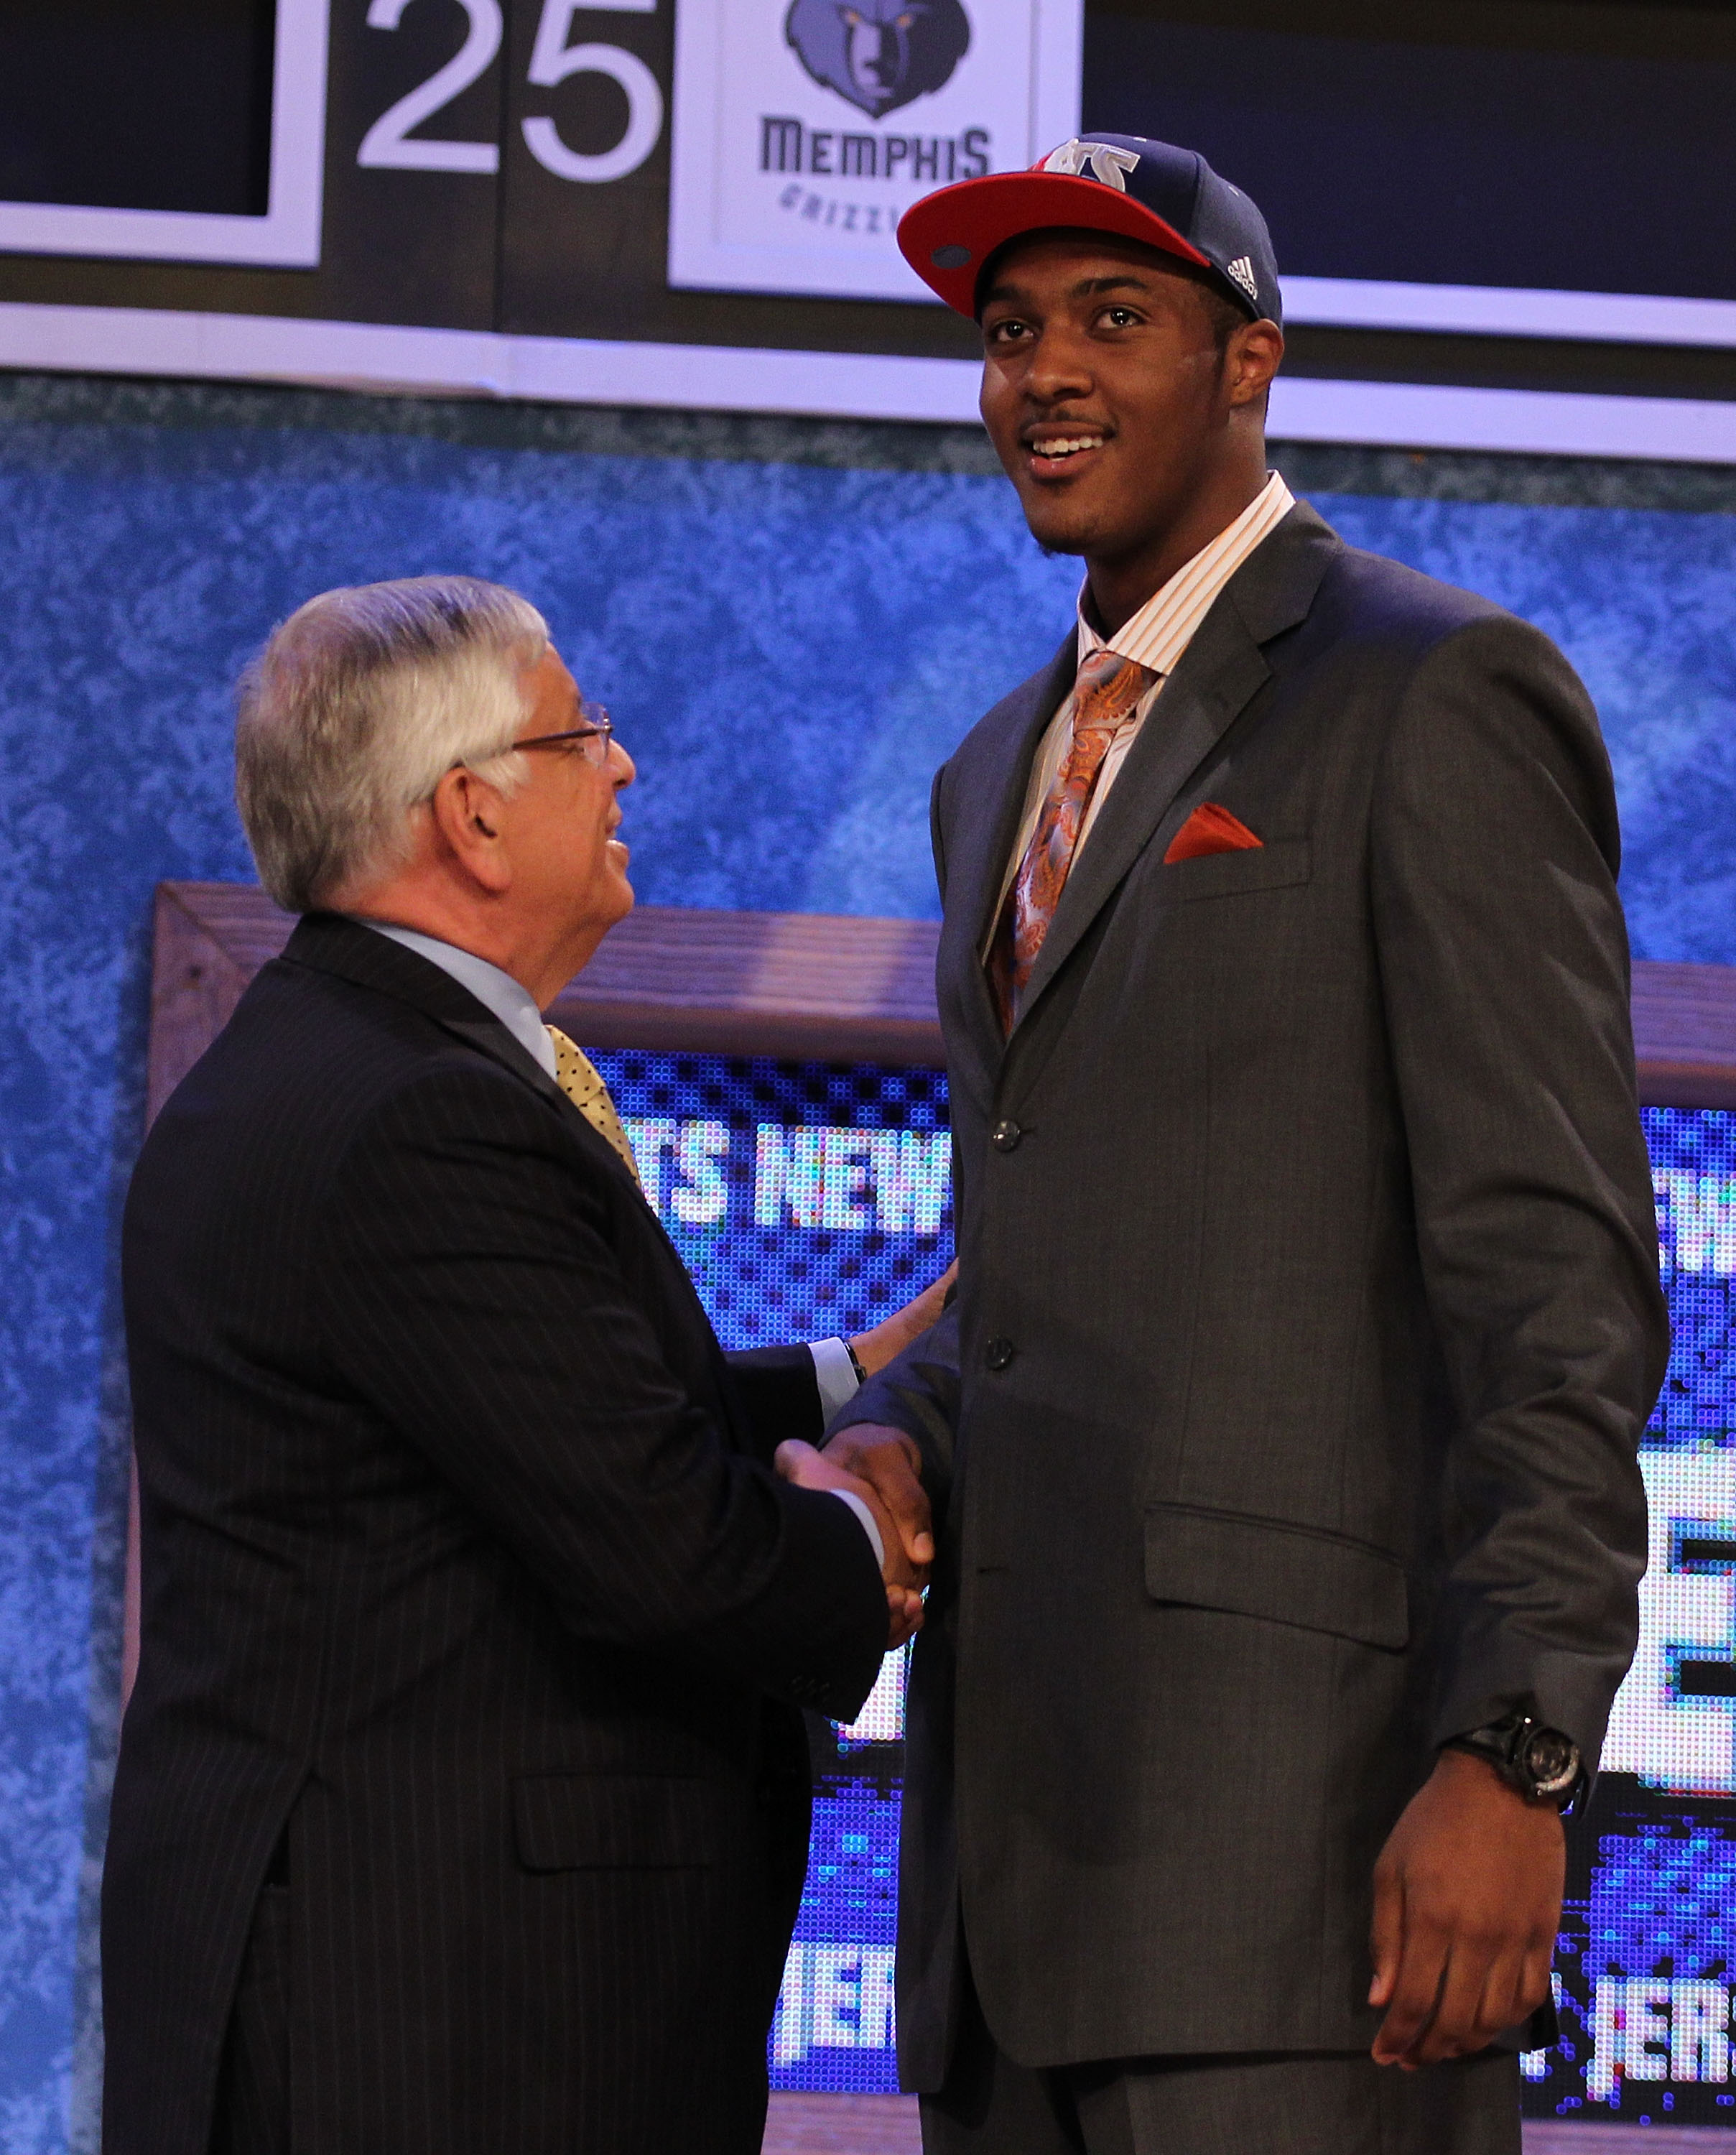 NEW YORK - JUNE 24:  Derrick Favors of Georgia State stands with NBA Commisioner David Stern after being drafted third overall by the New Jersey Nets at Madison Square Garden on June 24, 2010 in New York City.  NOTE TO USER: User expressly acknowledges an